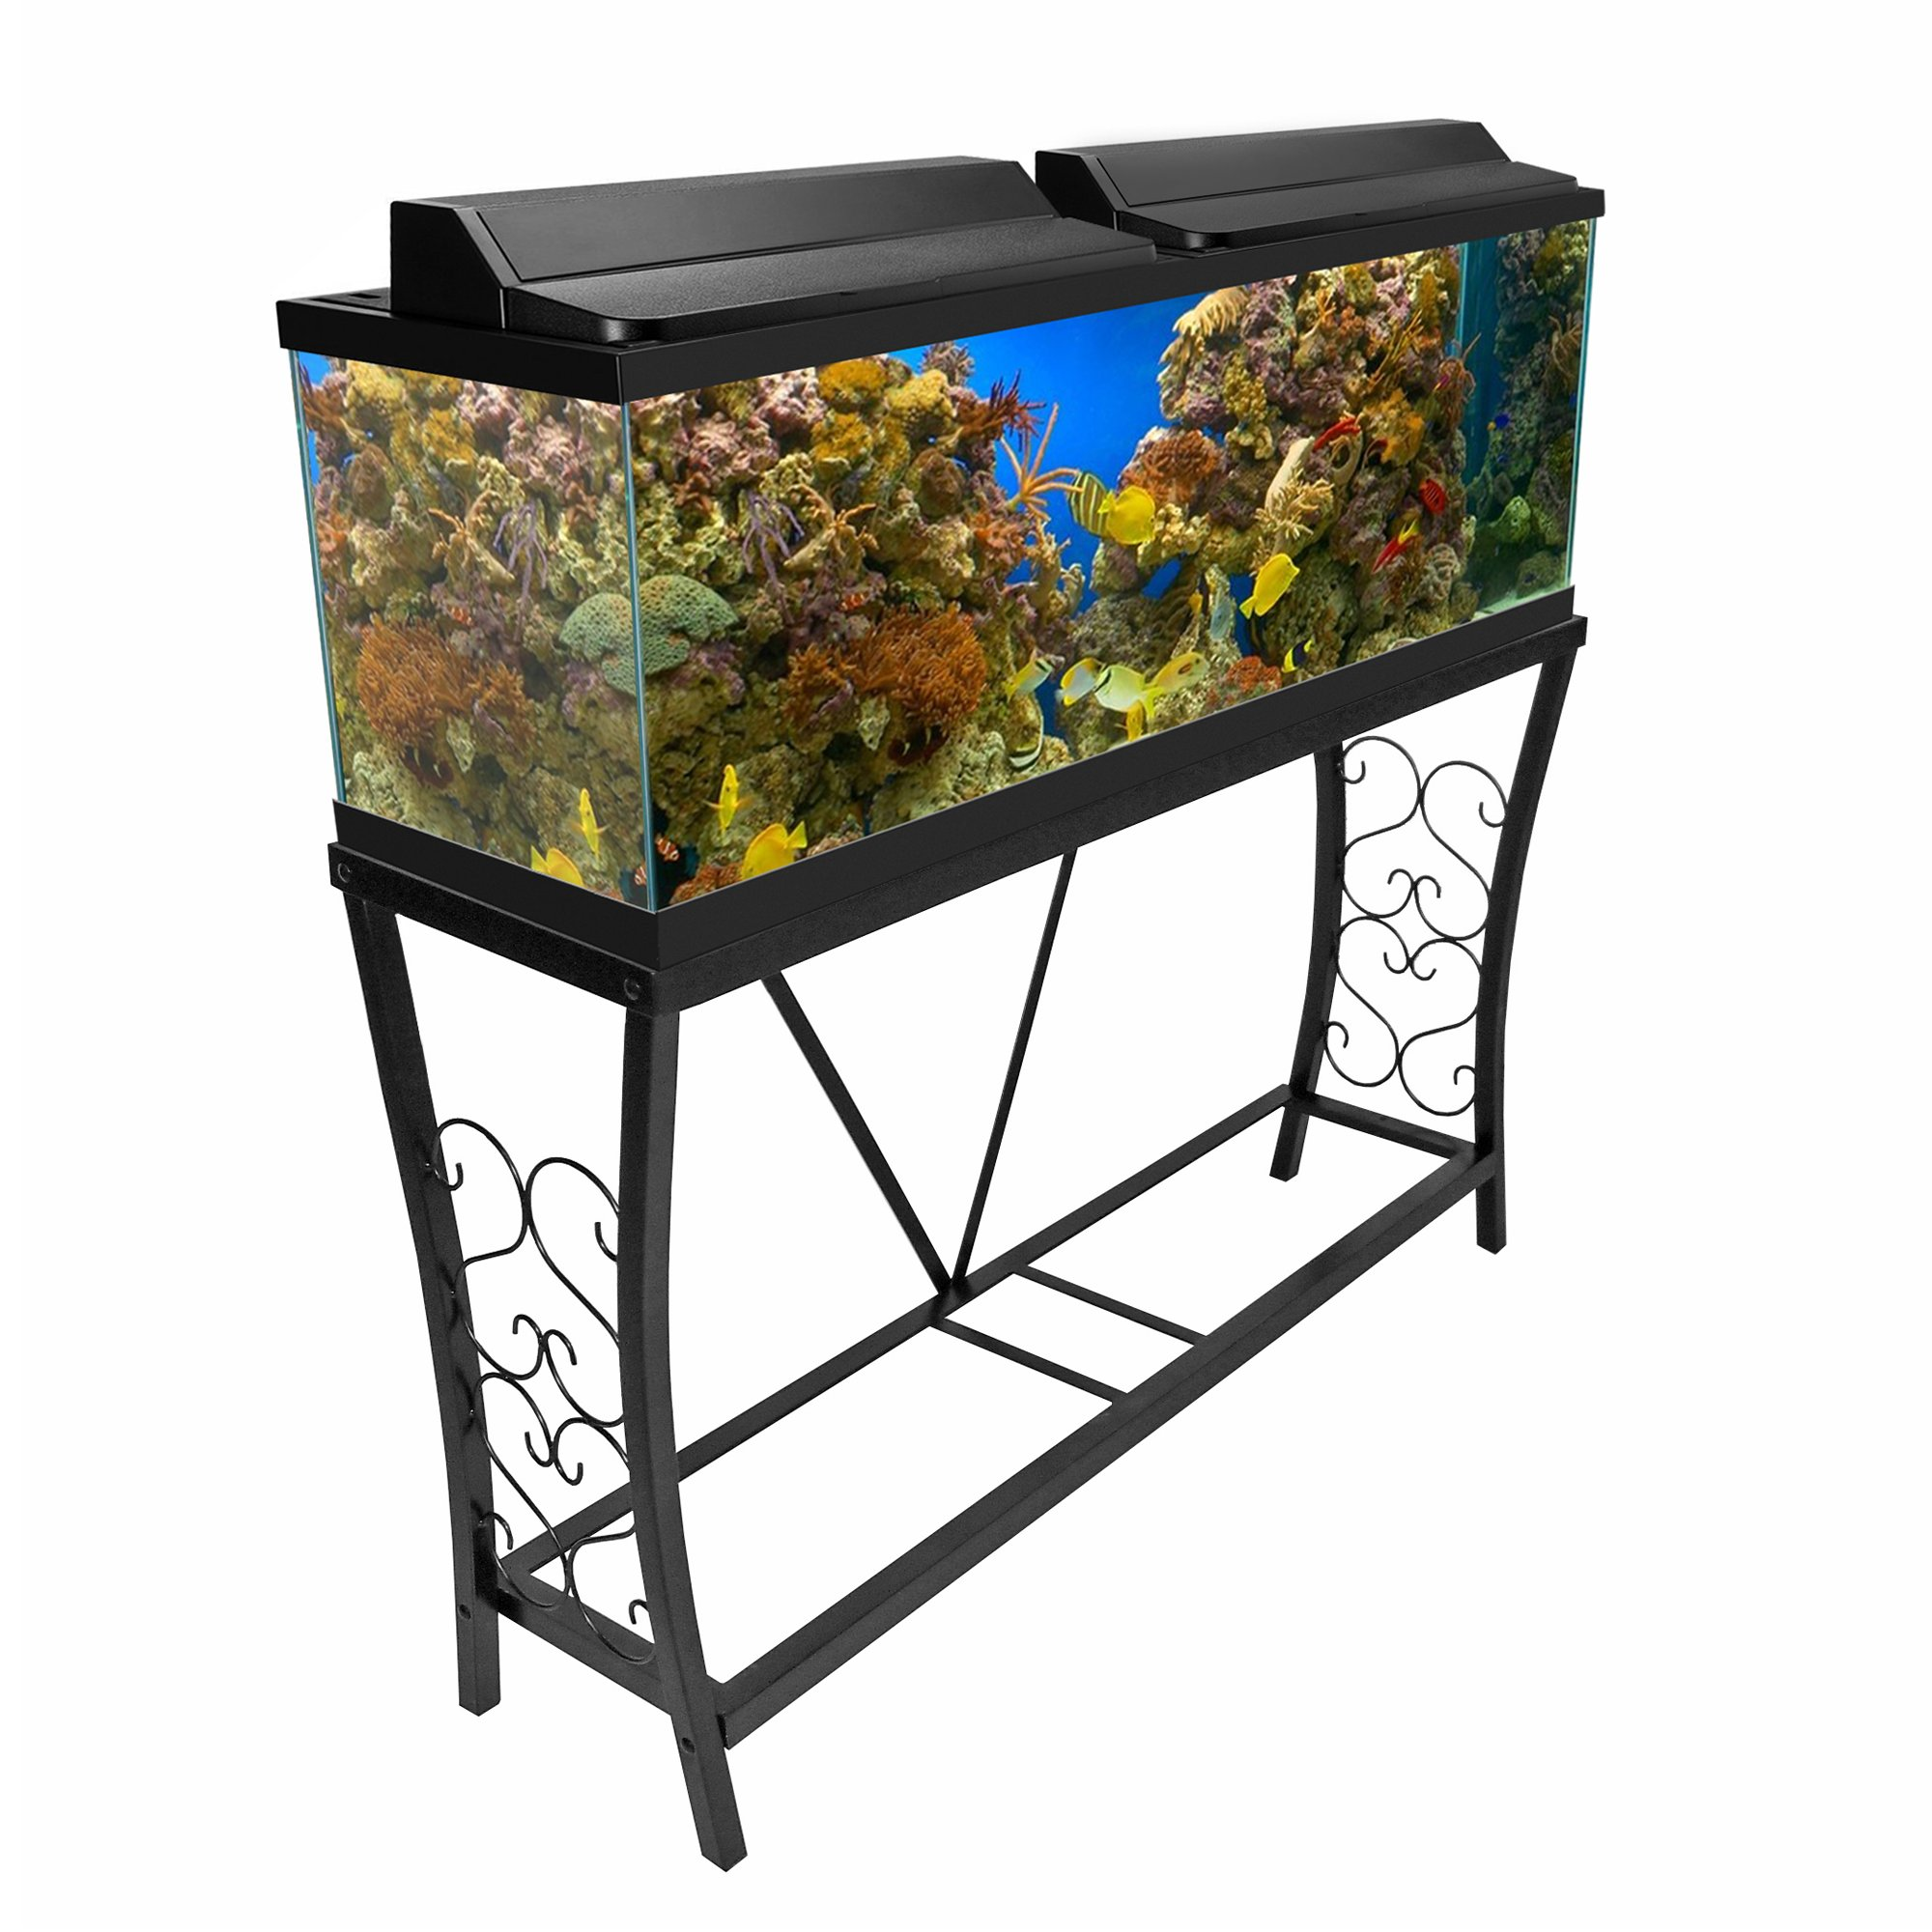 Fish tank with stand - Aquatic Fundamentals Black Scroll Aquarium Stand 55 Gallons